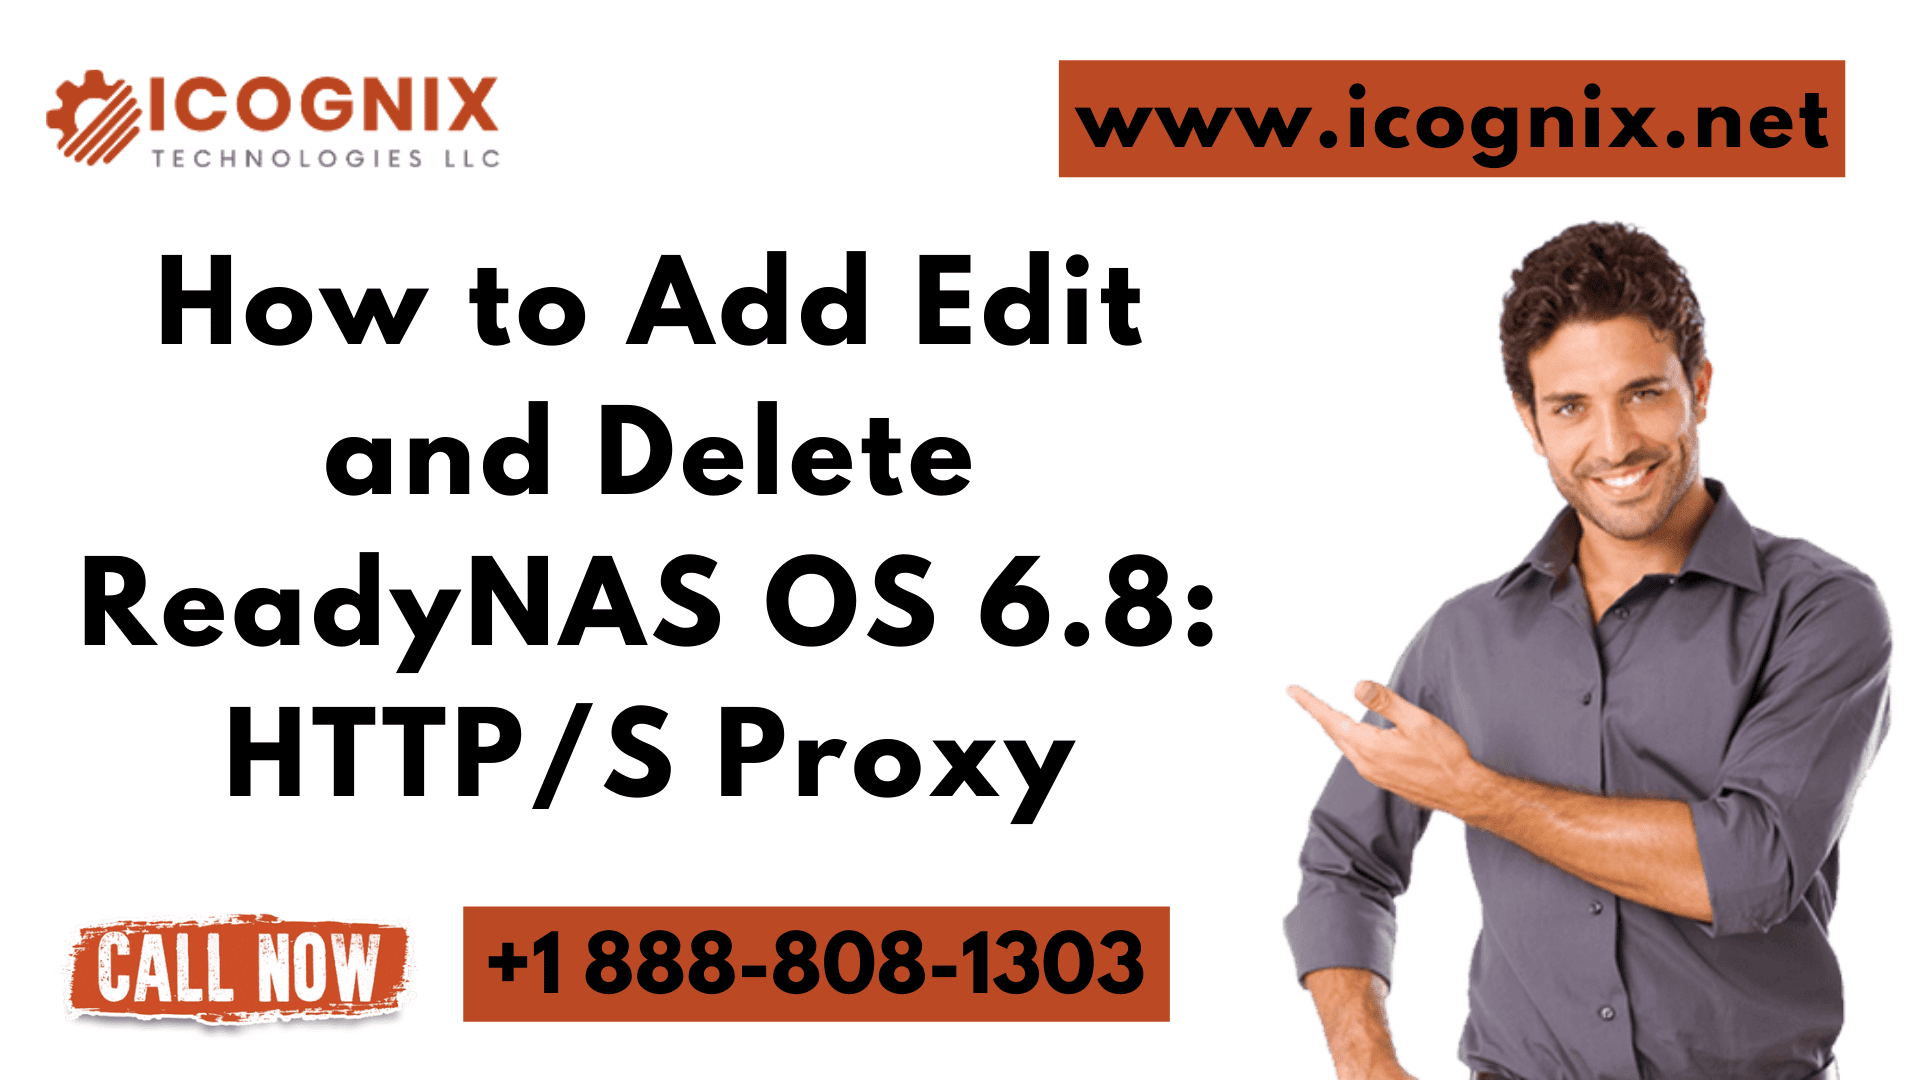 How to Add Edit and Delete ReadyNAS OS 6.8 HTTPS Proxy